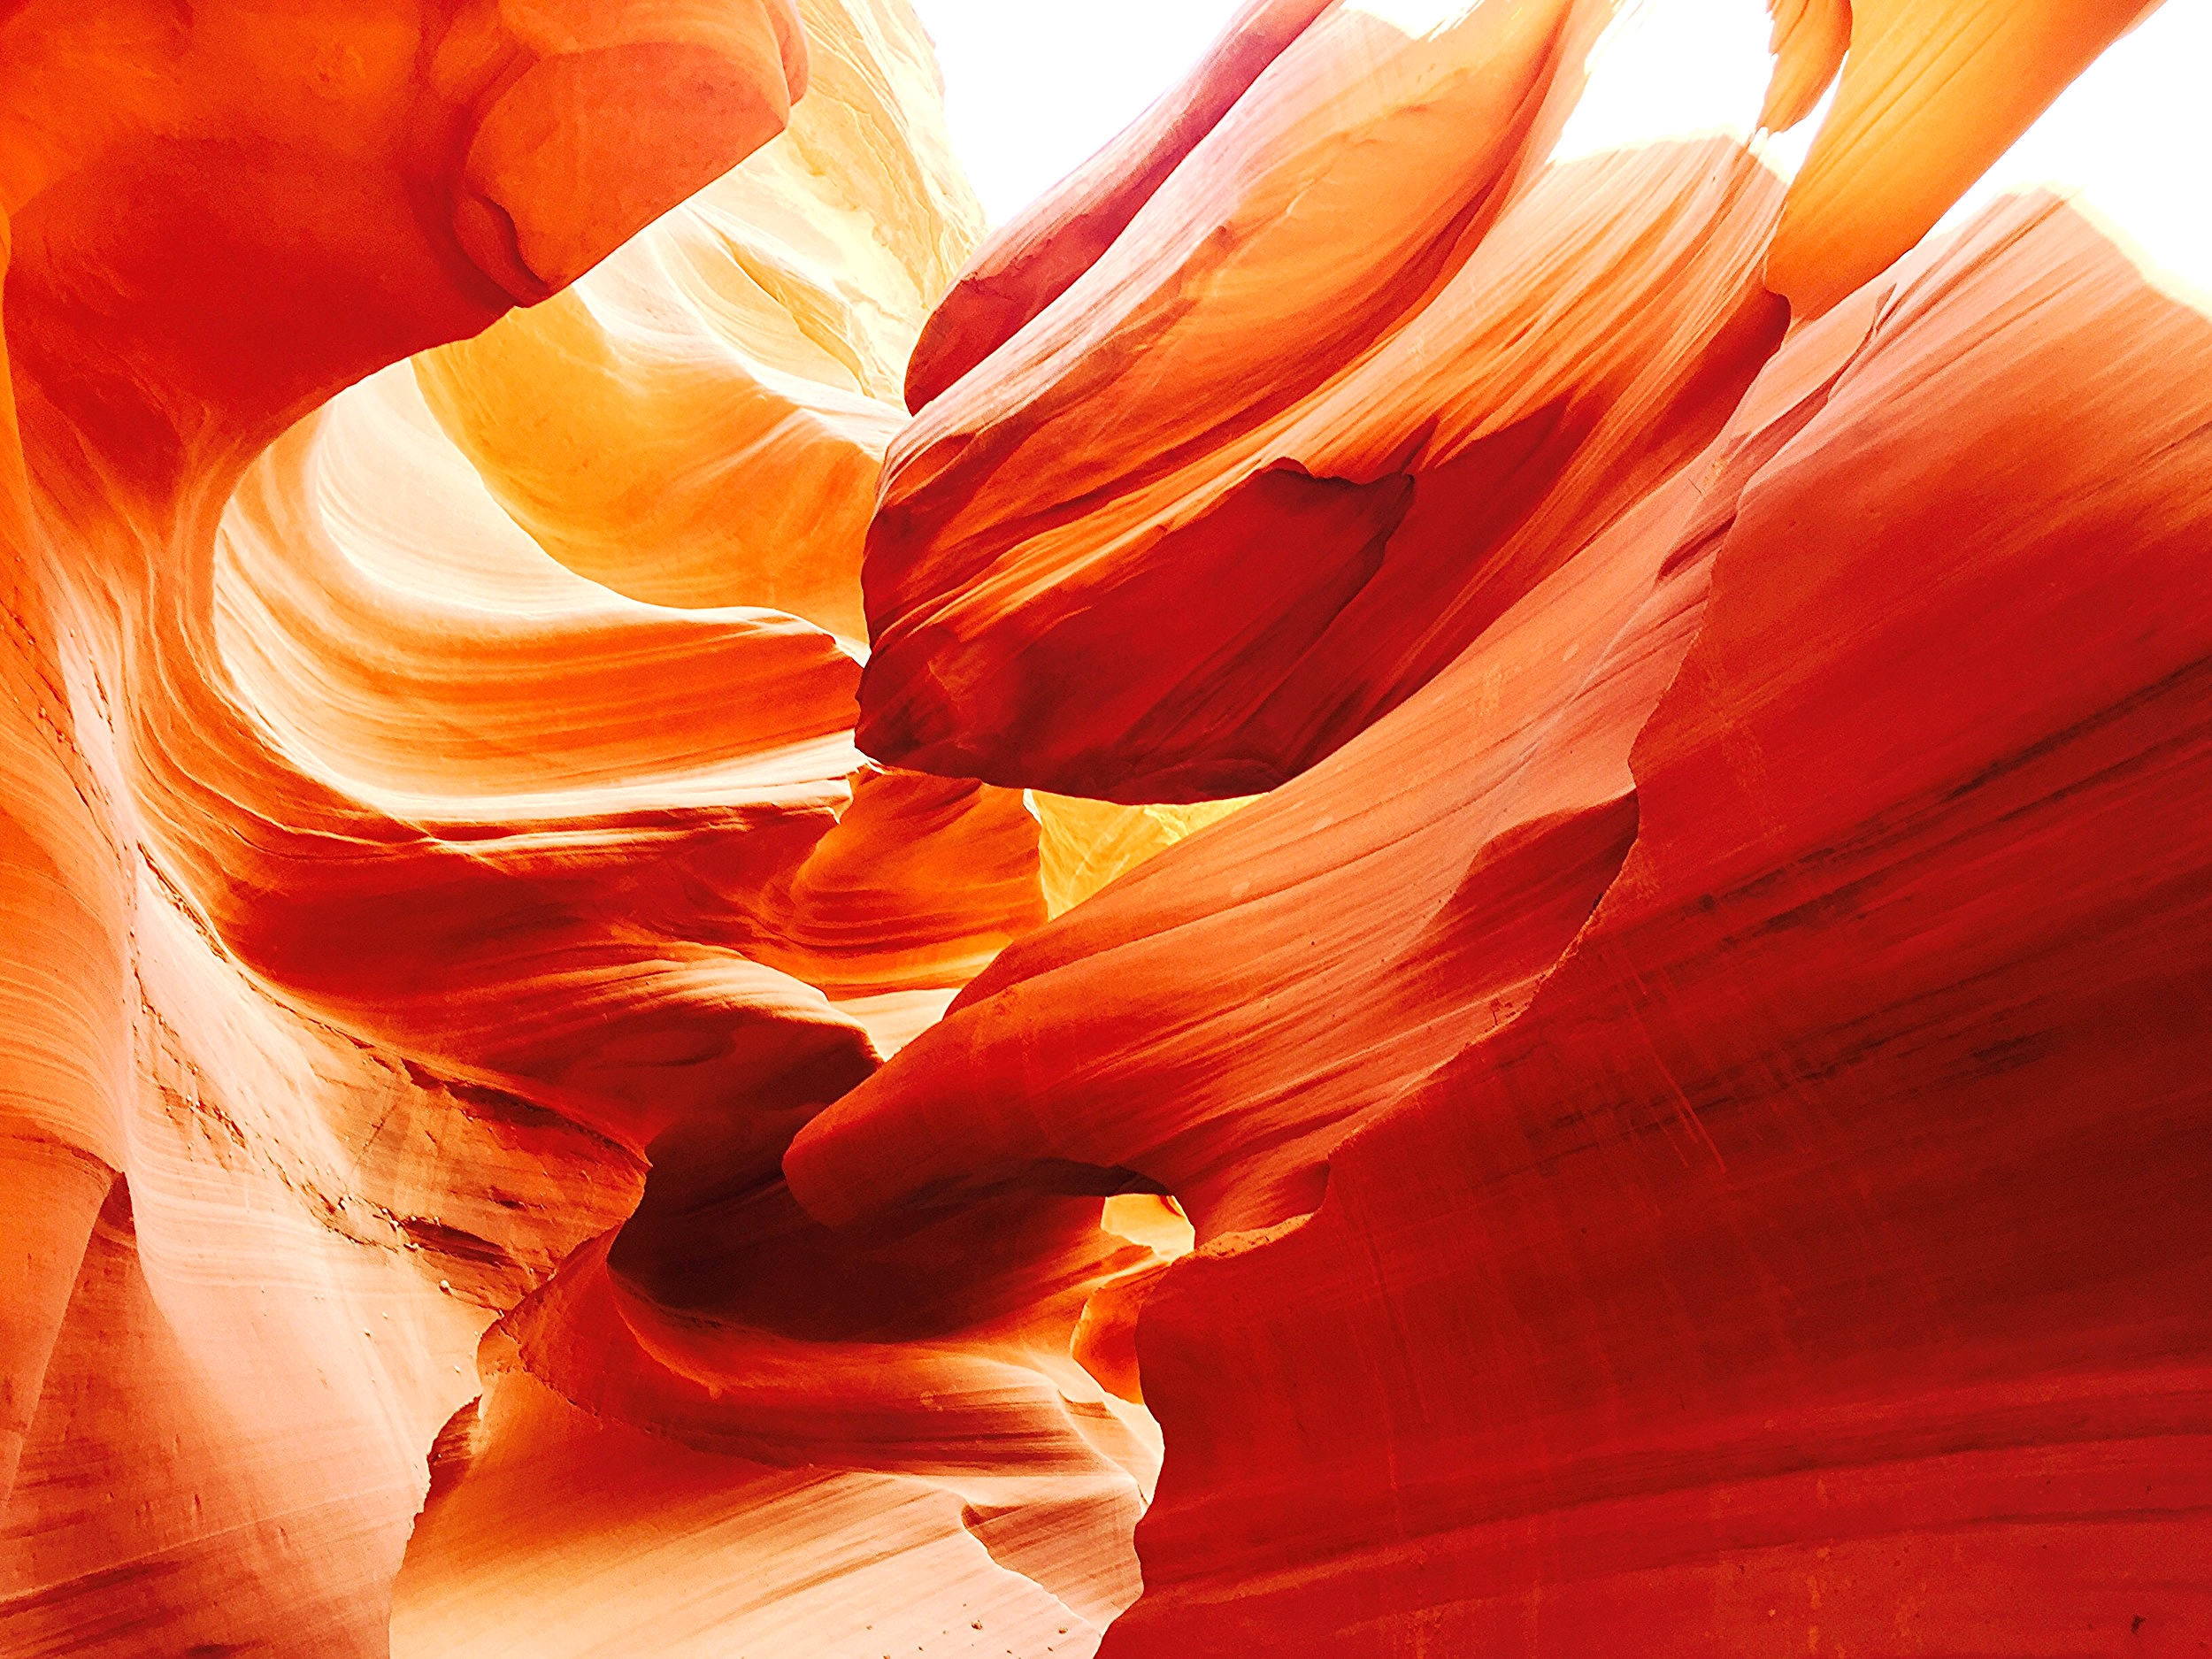 Swirls abound in Lower Antelope Canyon